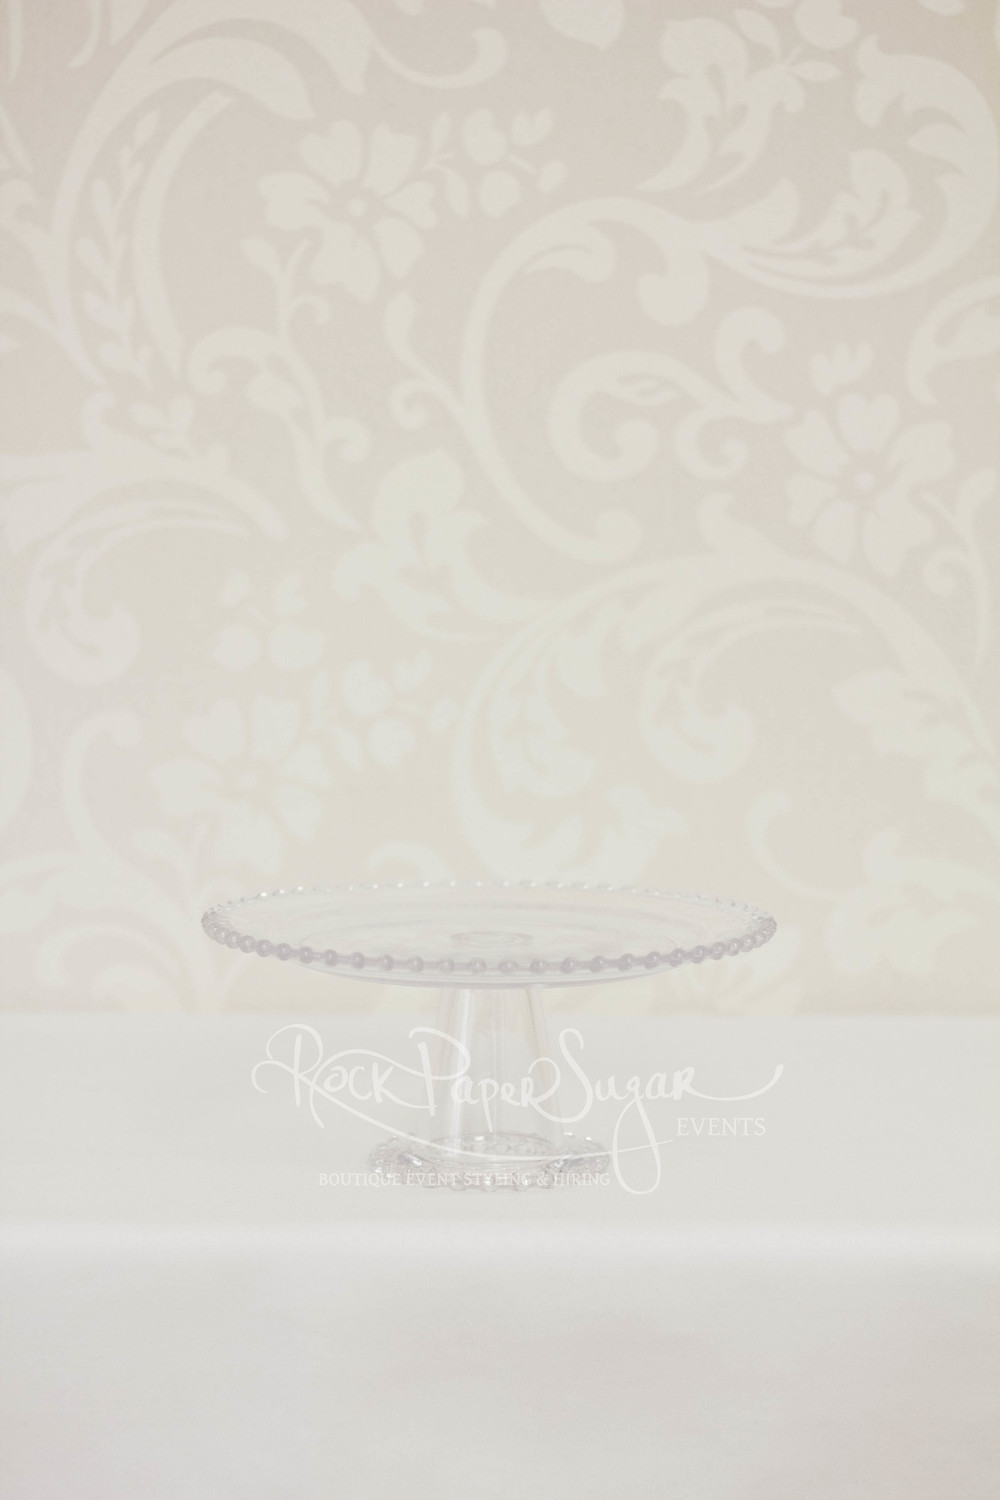 Rock Paper Sugar Events Cake Stands 009.jpg